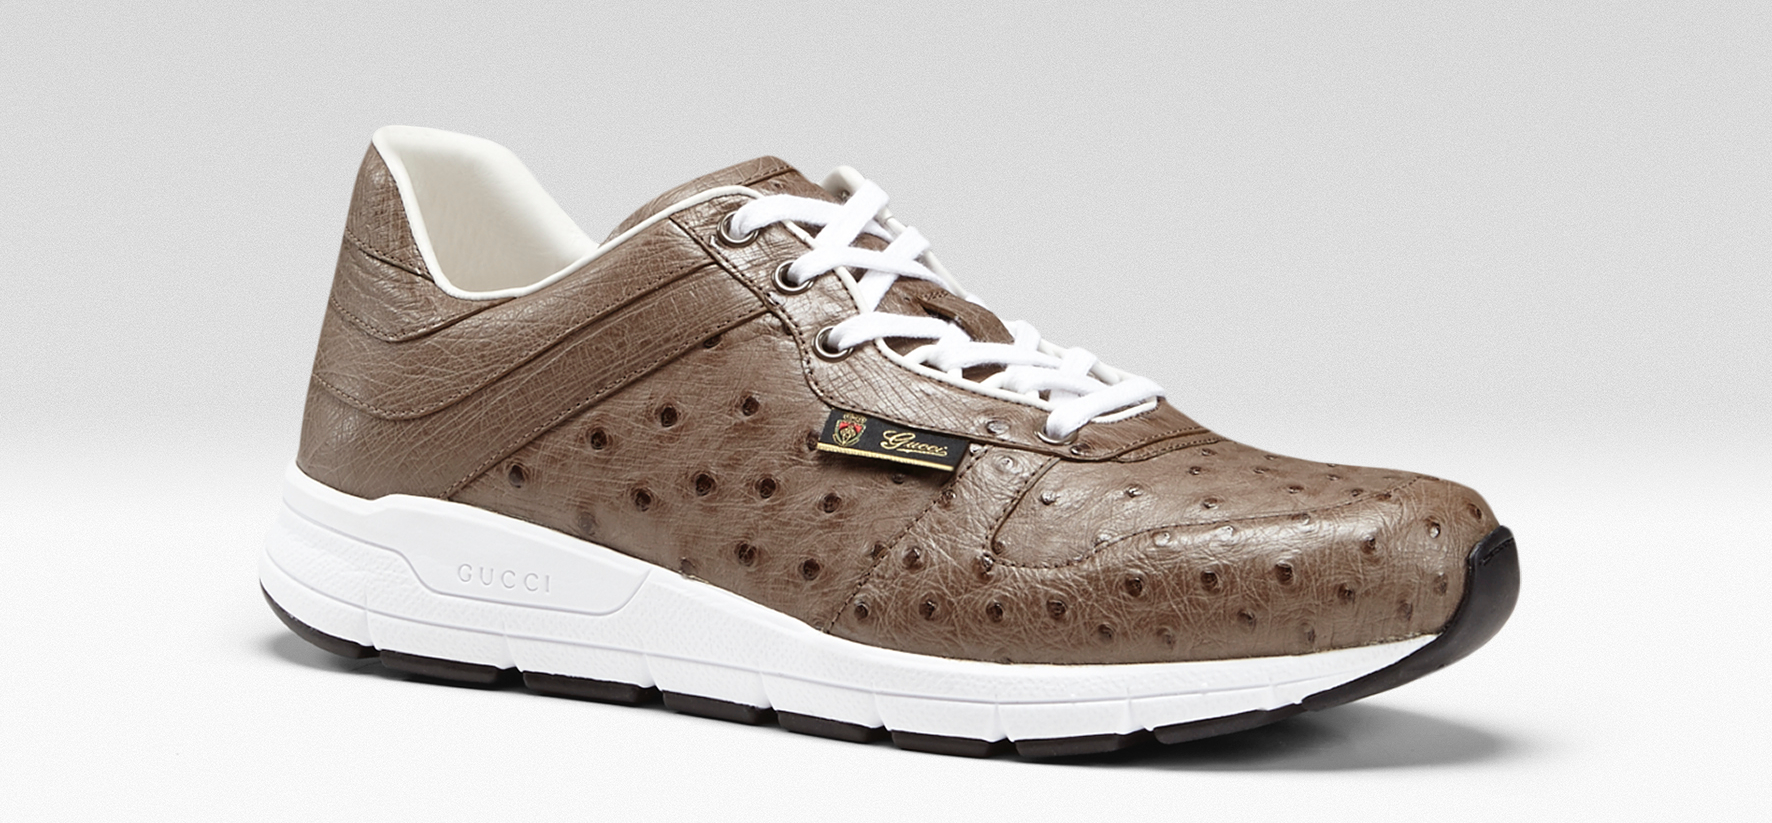 Fresh New Footwear Styles for Summer by Gucci